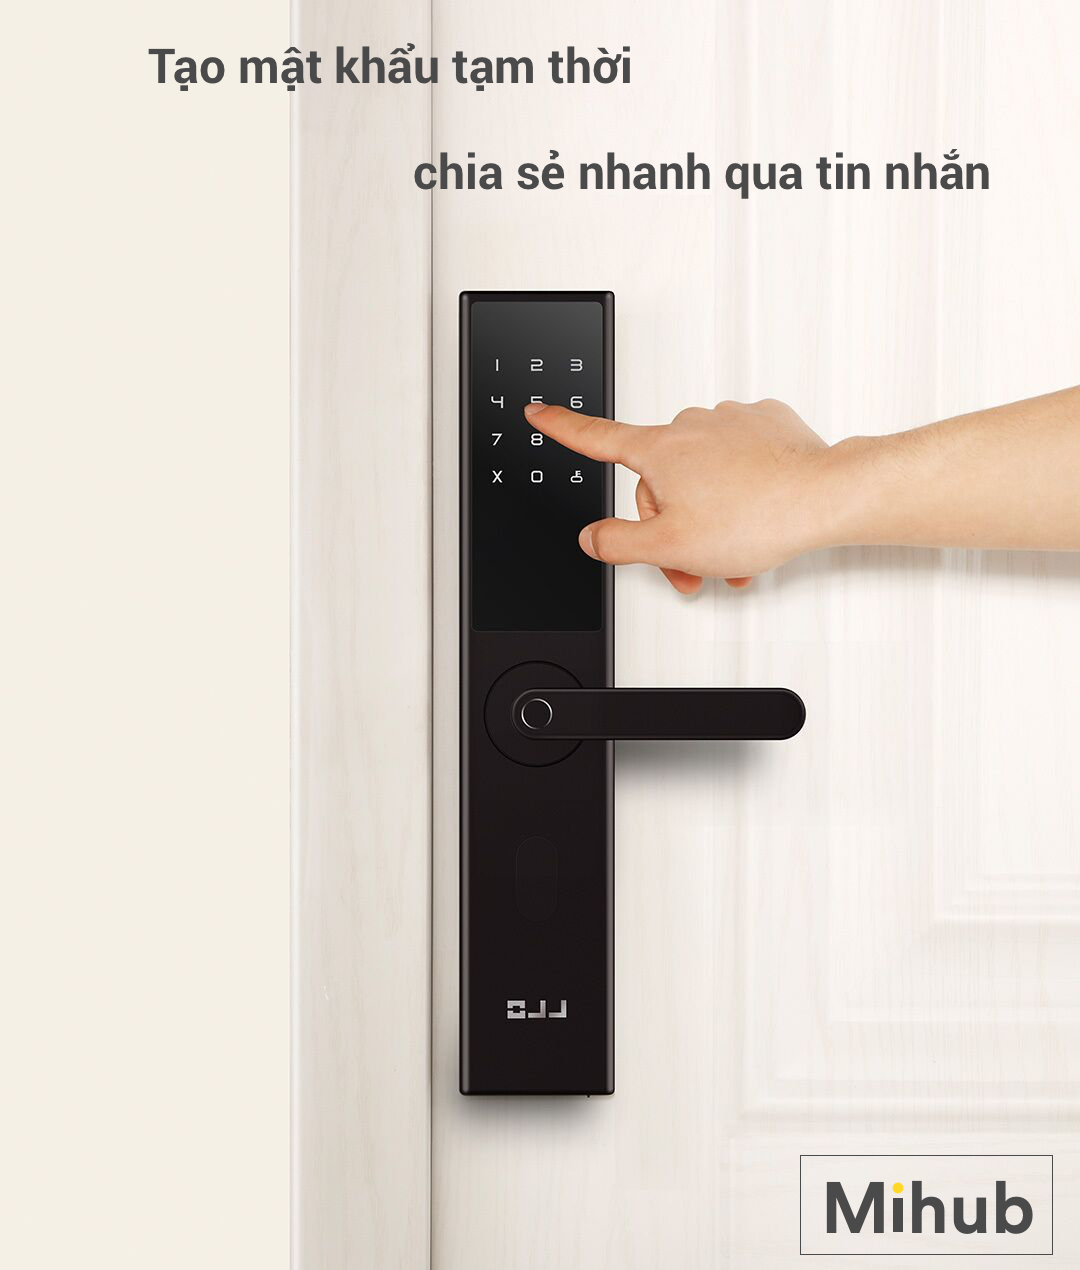 The service provides and sells Xiaomi Youpin OJJ X1 smart door locks products in Ho Chi Minh City